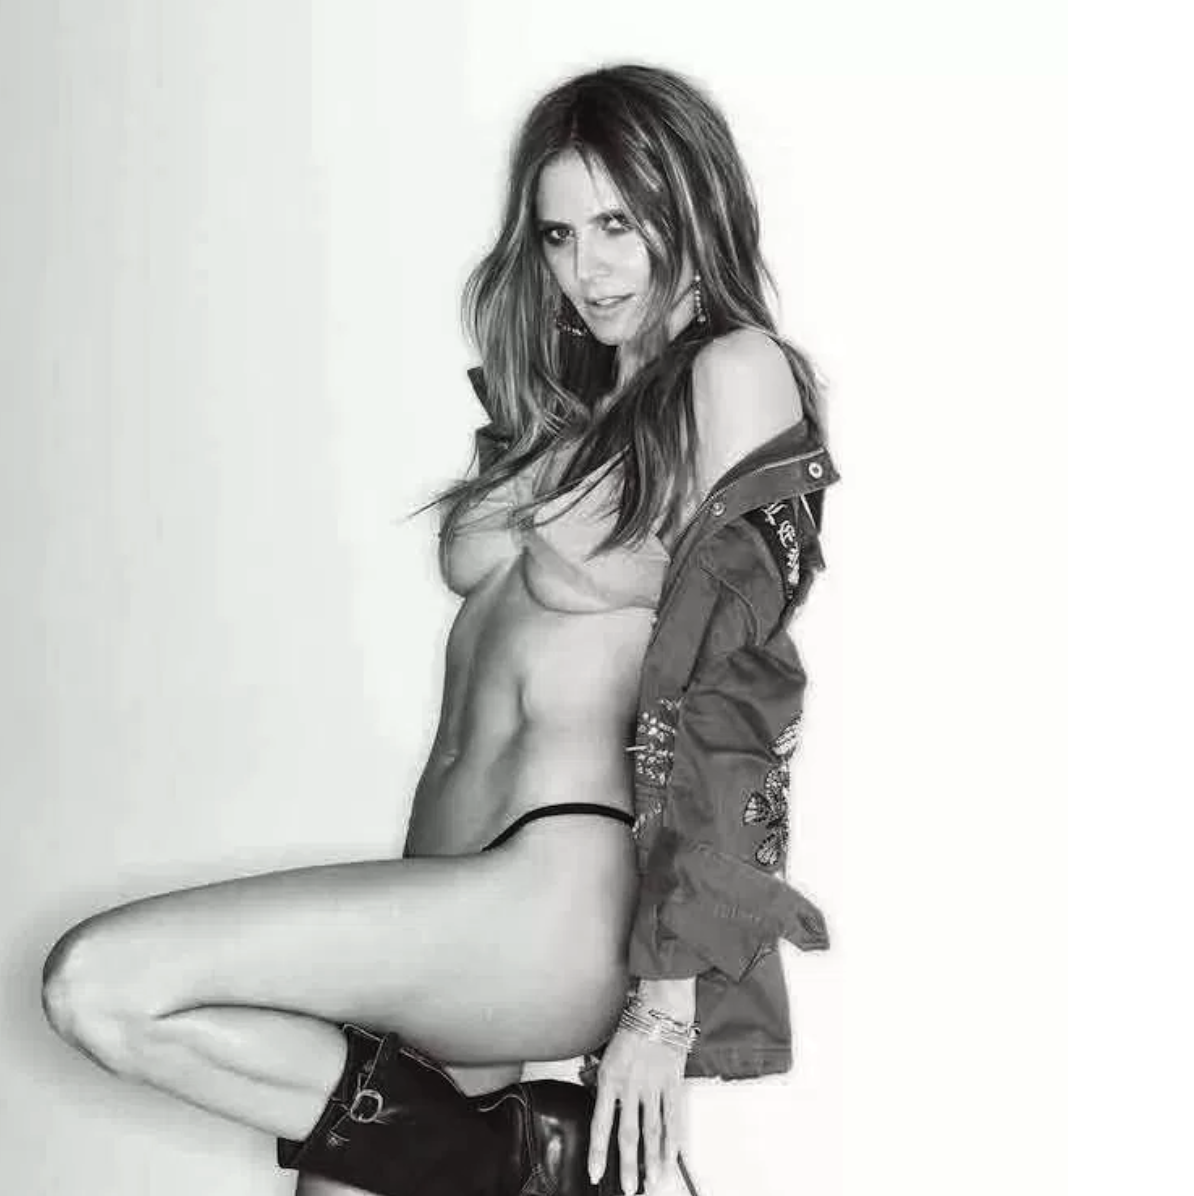 Ageless Heidi Klum Goes Topless for Busty MAXIM Spread [SFW PICS]